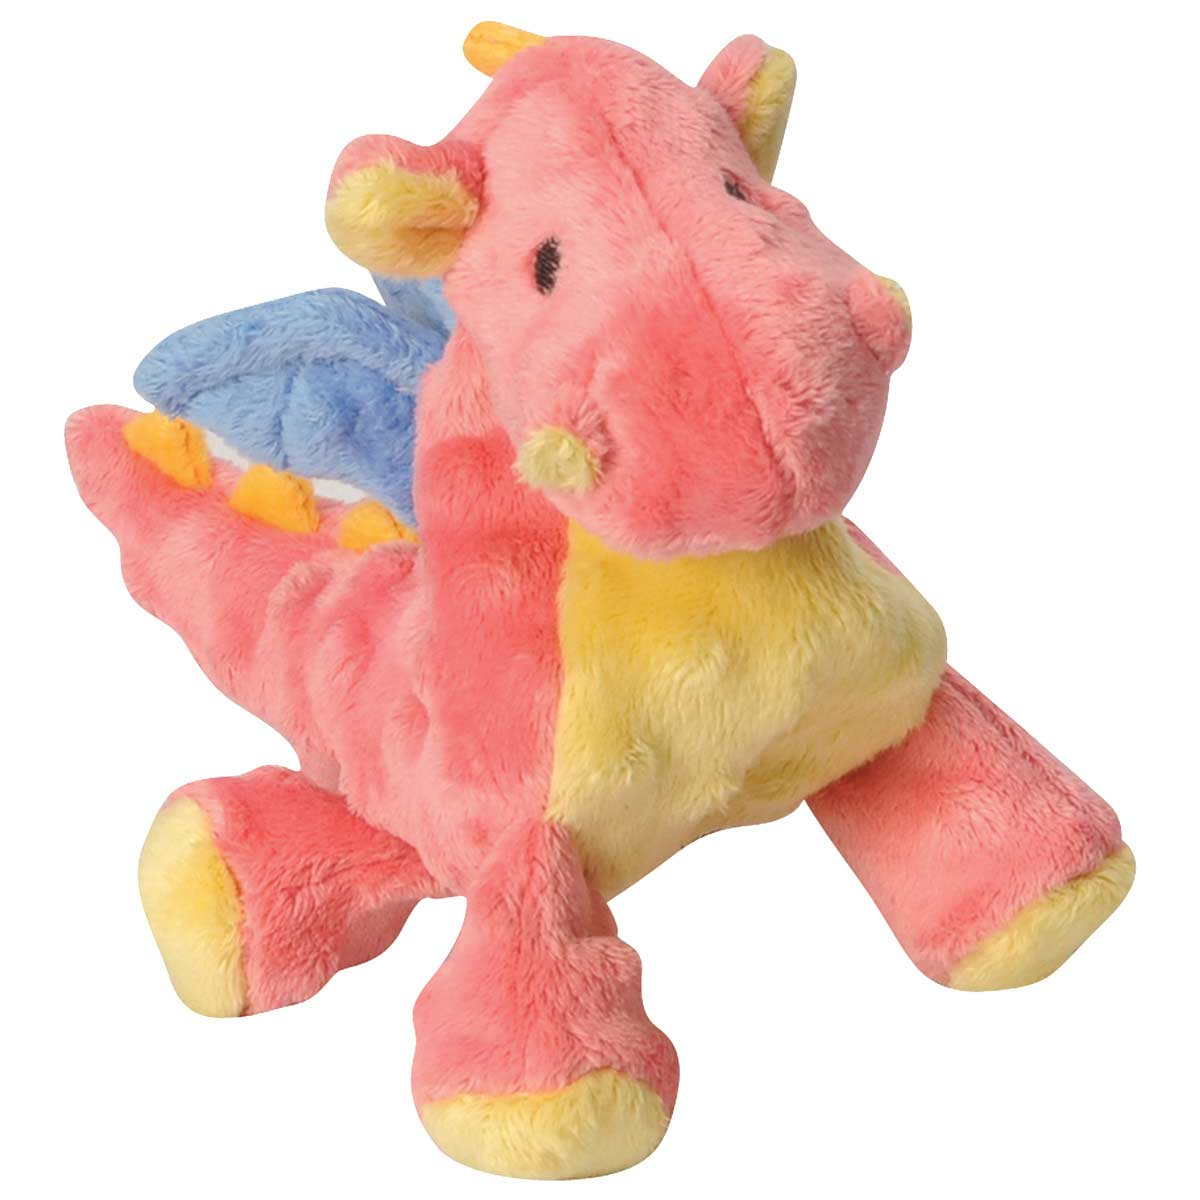 goDog Plush Dragon Coral Small 6 inch Dog Toy